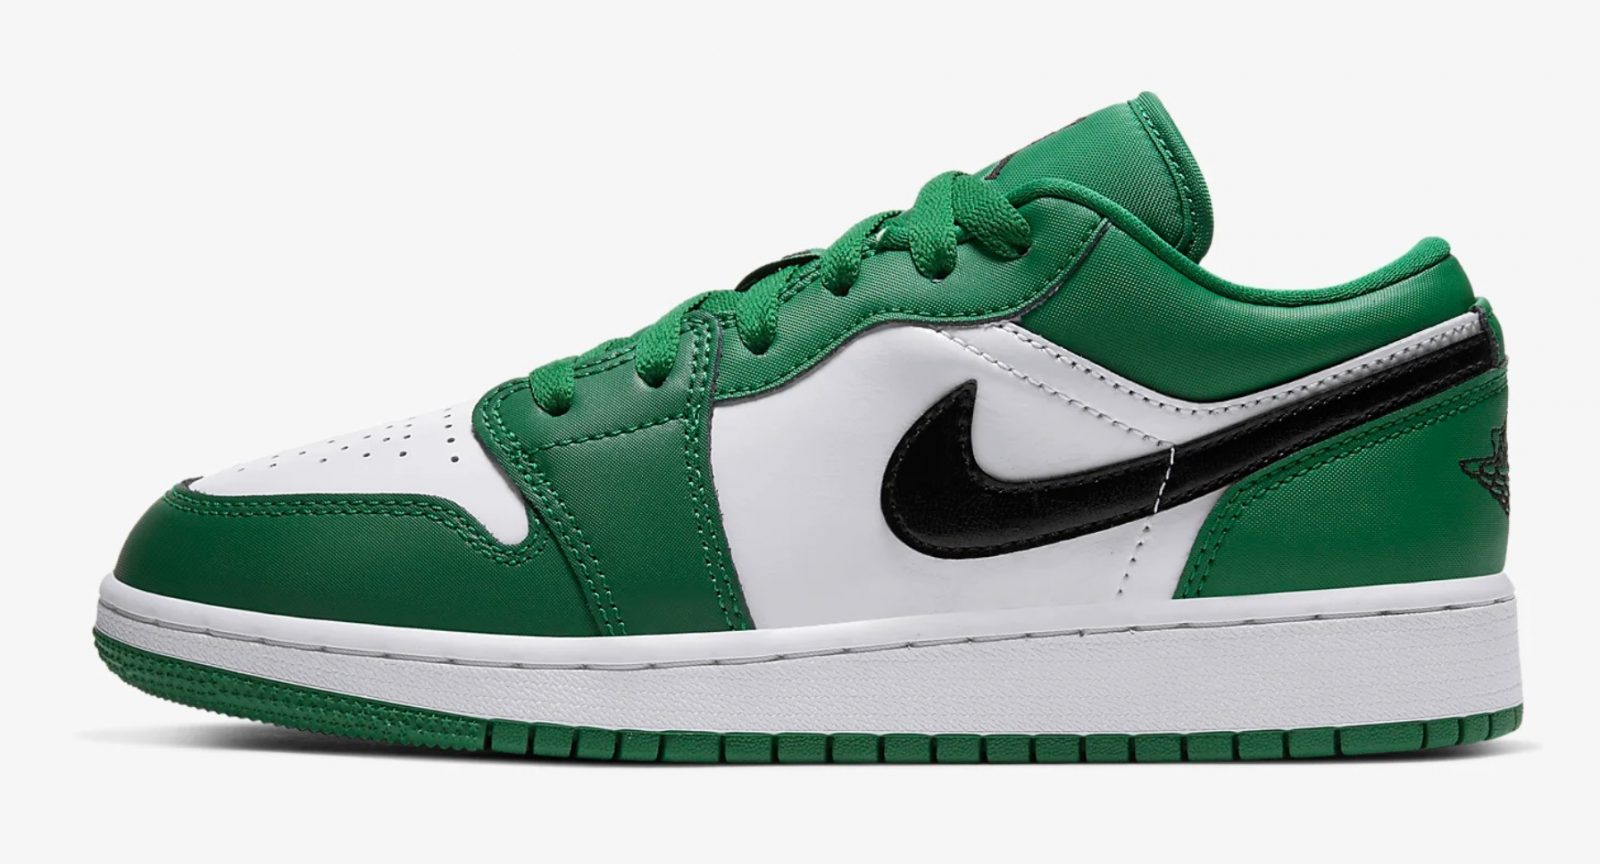 Air Jordan 1 Low Pine Green 553560-301 left